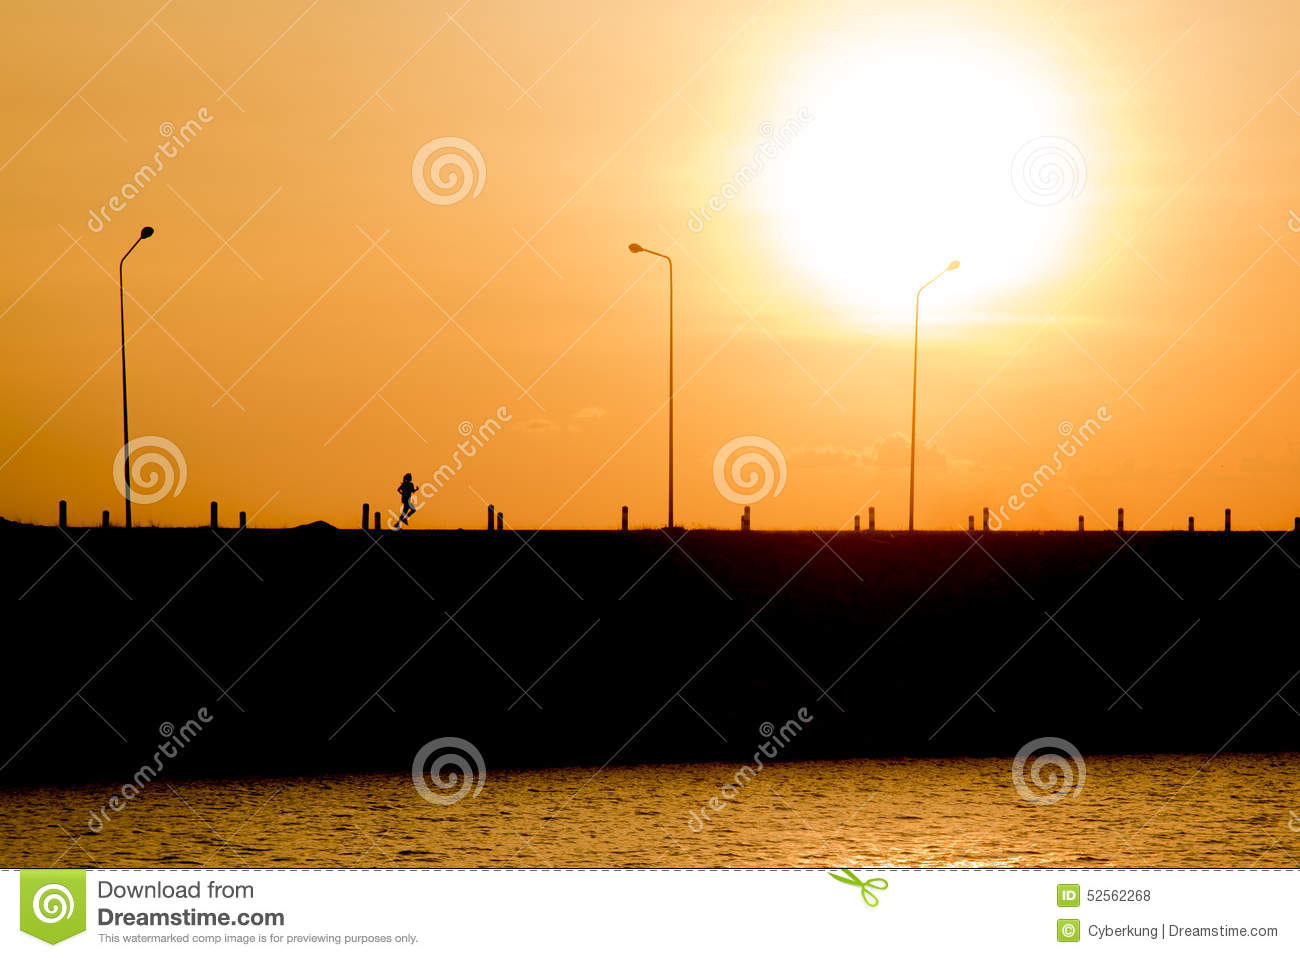 Woman is running in sunset (silhouette)